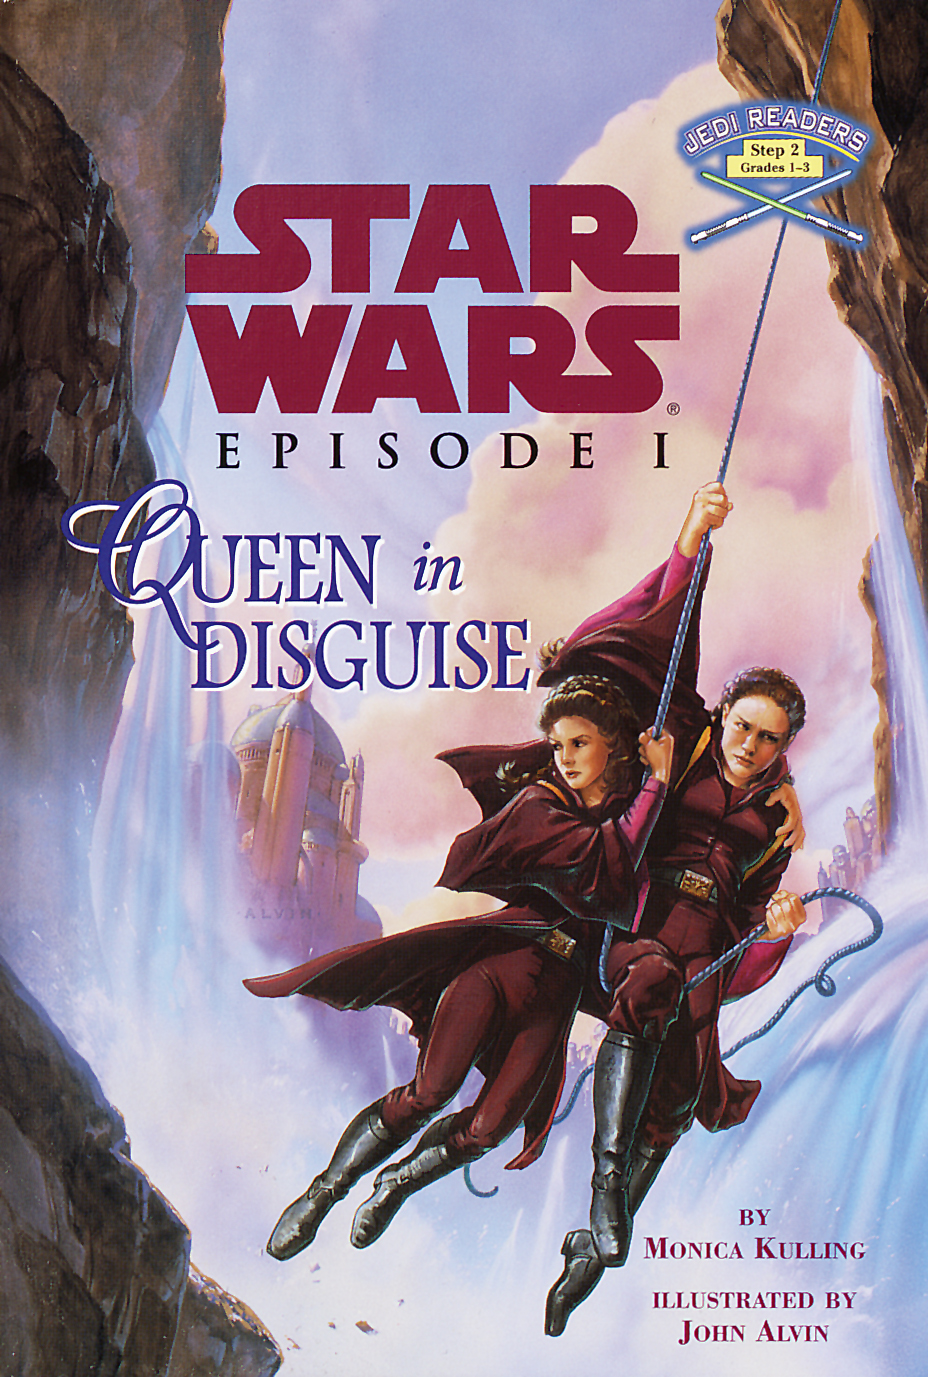 Star Wars Episode I: Queen in Disguise